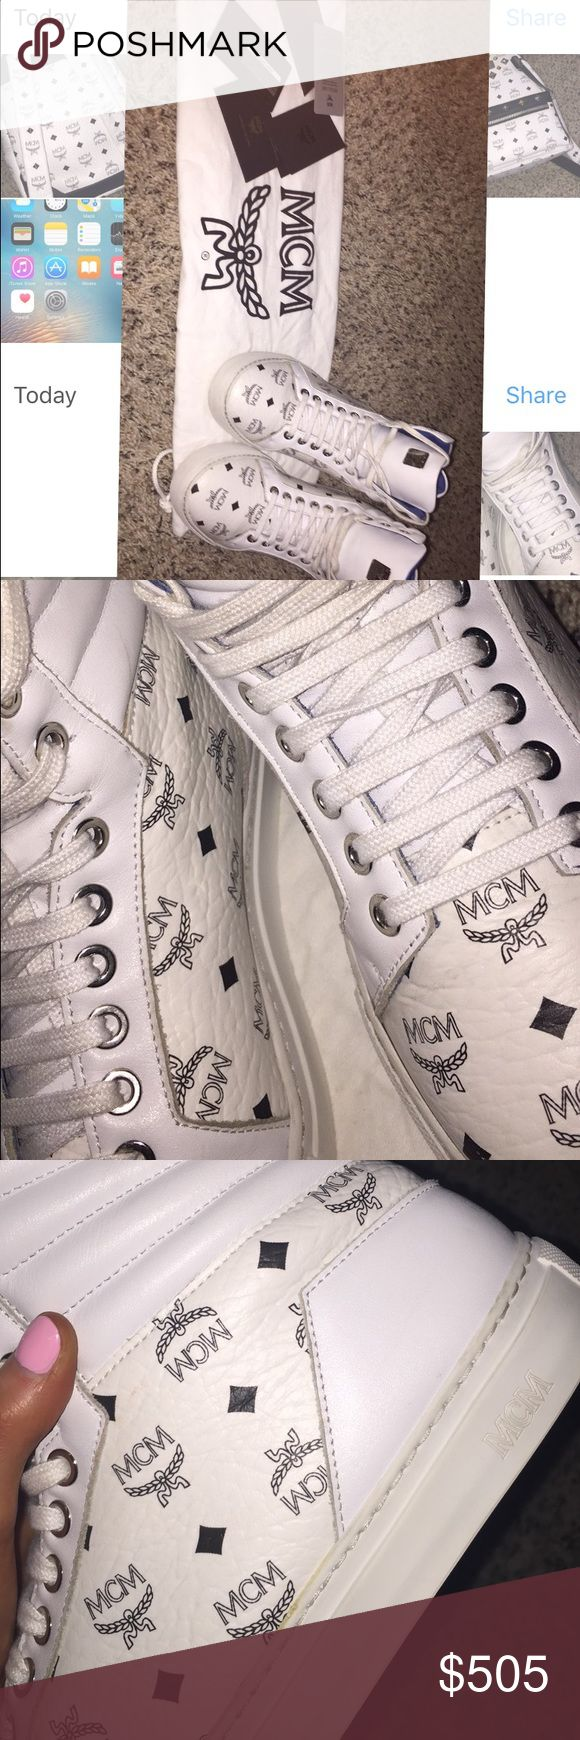 100%authentic unisex mcm shoes 100% authentic white mcm shoes great condition Ive looked around at the shoes and see no flaws no smells no tears nothing like that but the shoe laces are a little dirty (I'm going to be washing them) these shoes are a men's 5 1/2 but I'm pretty sure that's like a 7 in women's cause that's what size women's shoe I wear there just like brand new I have no box but dust bag is included there so comfy and go super cute with the matching backpack (available in my…